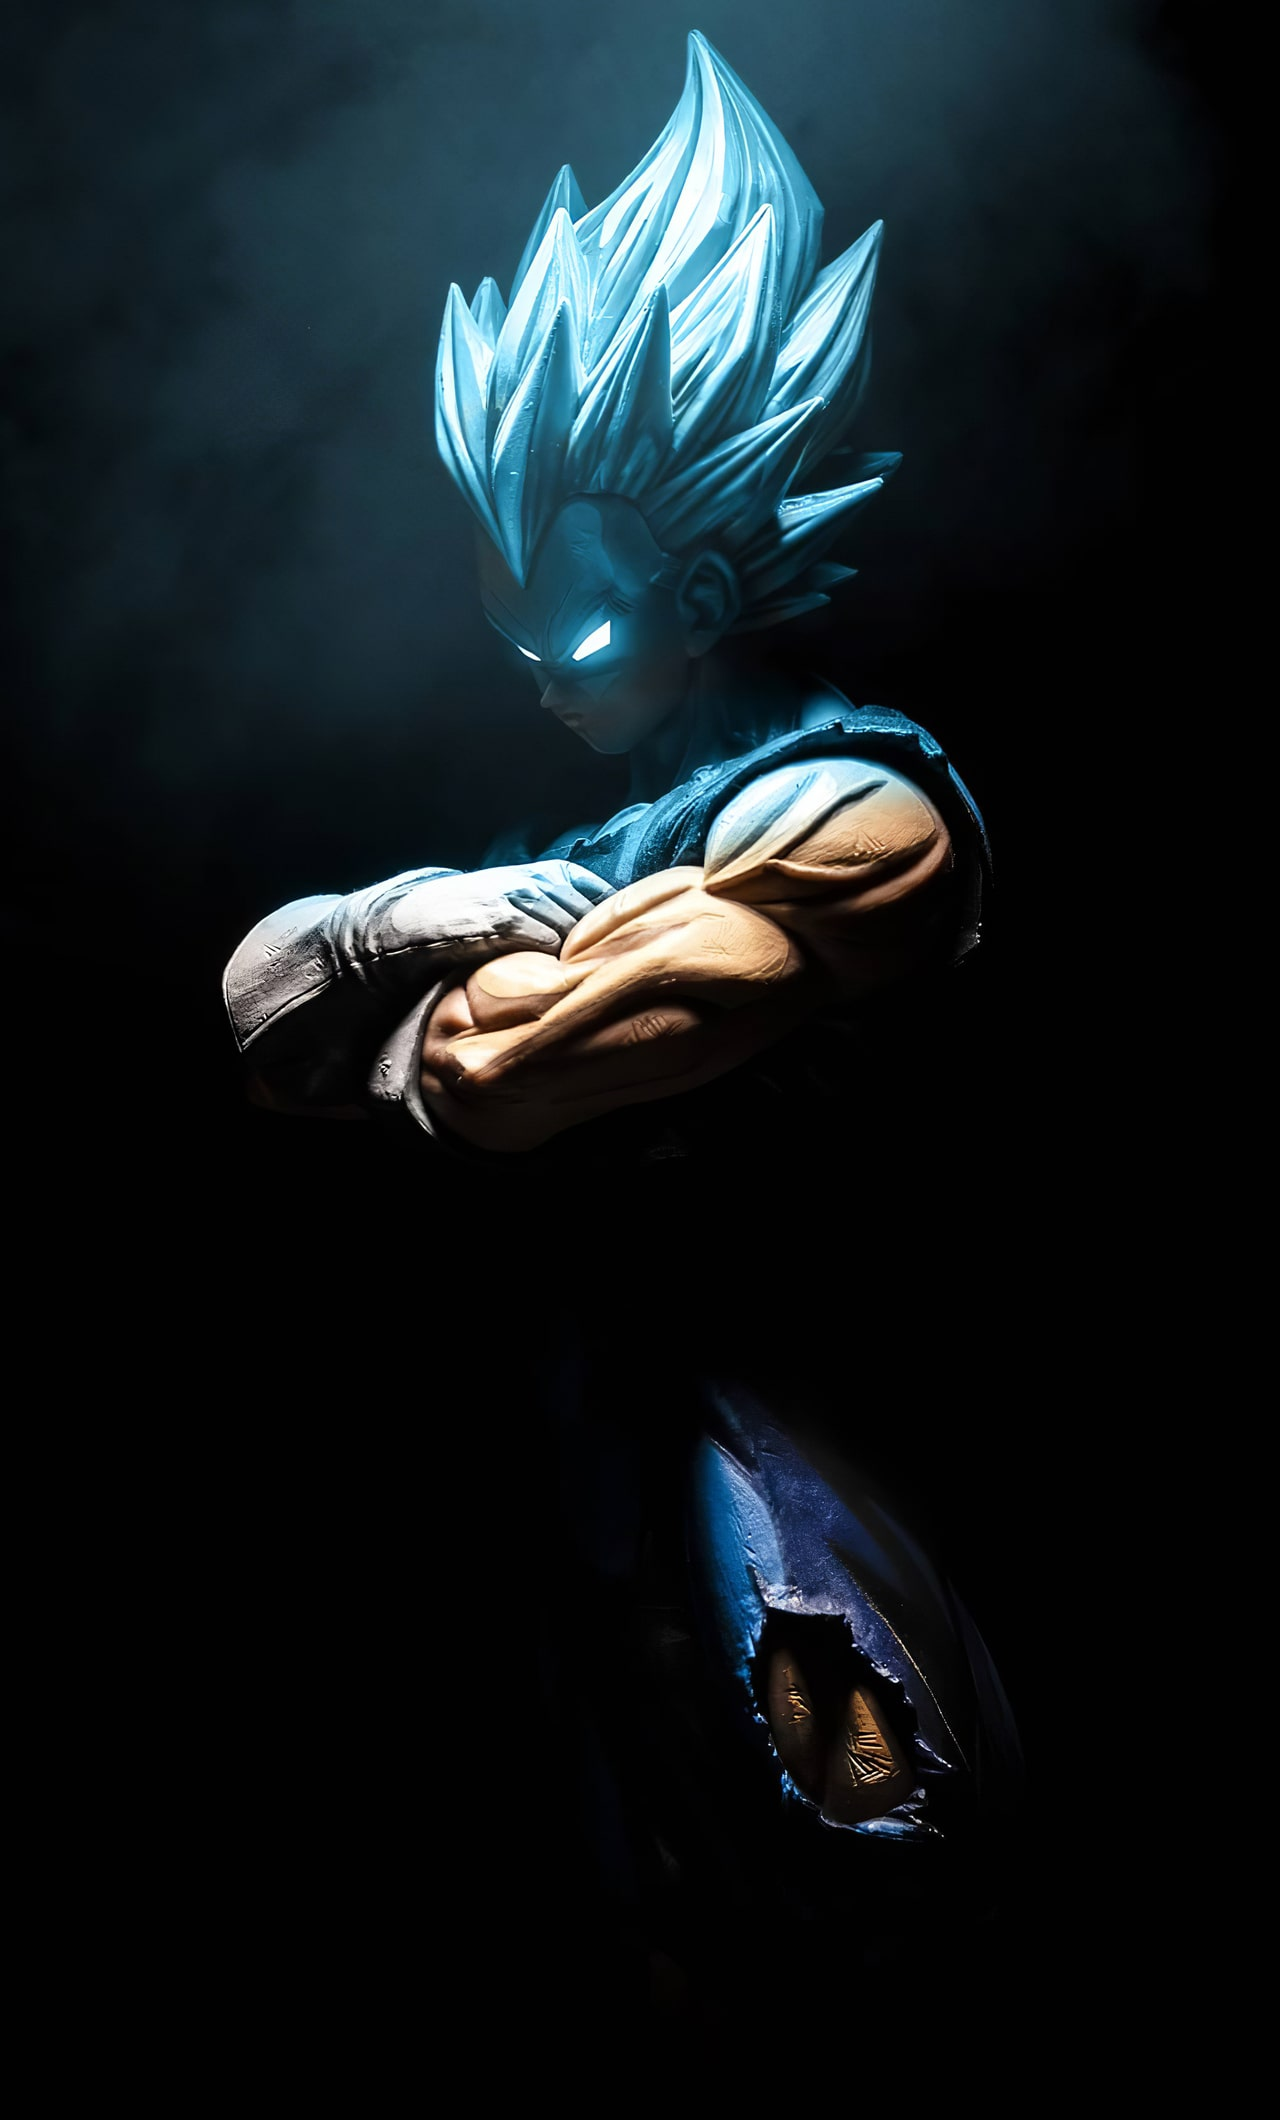 Android Goku Wallpaper Kolpaper Awesome Free Hd Wallpapers